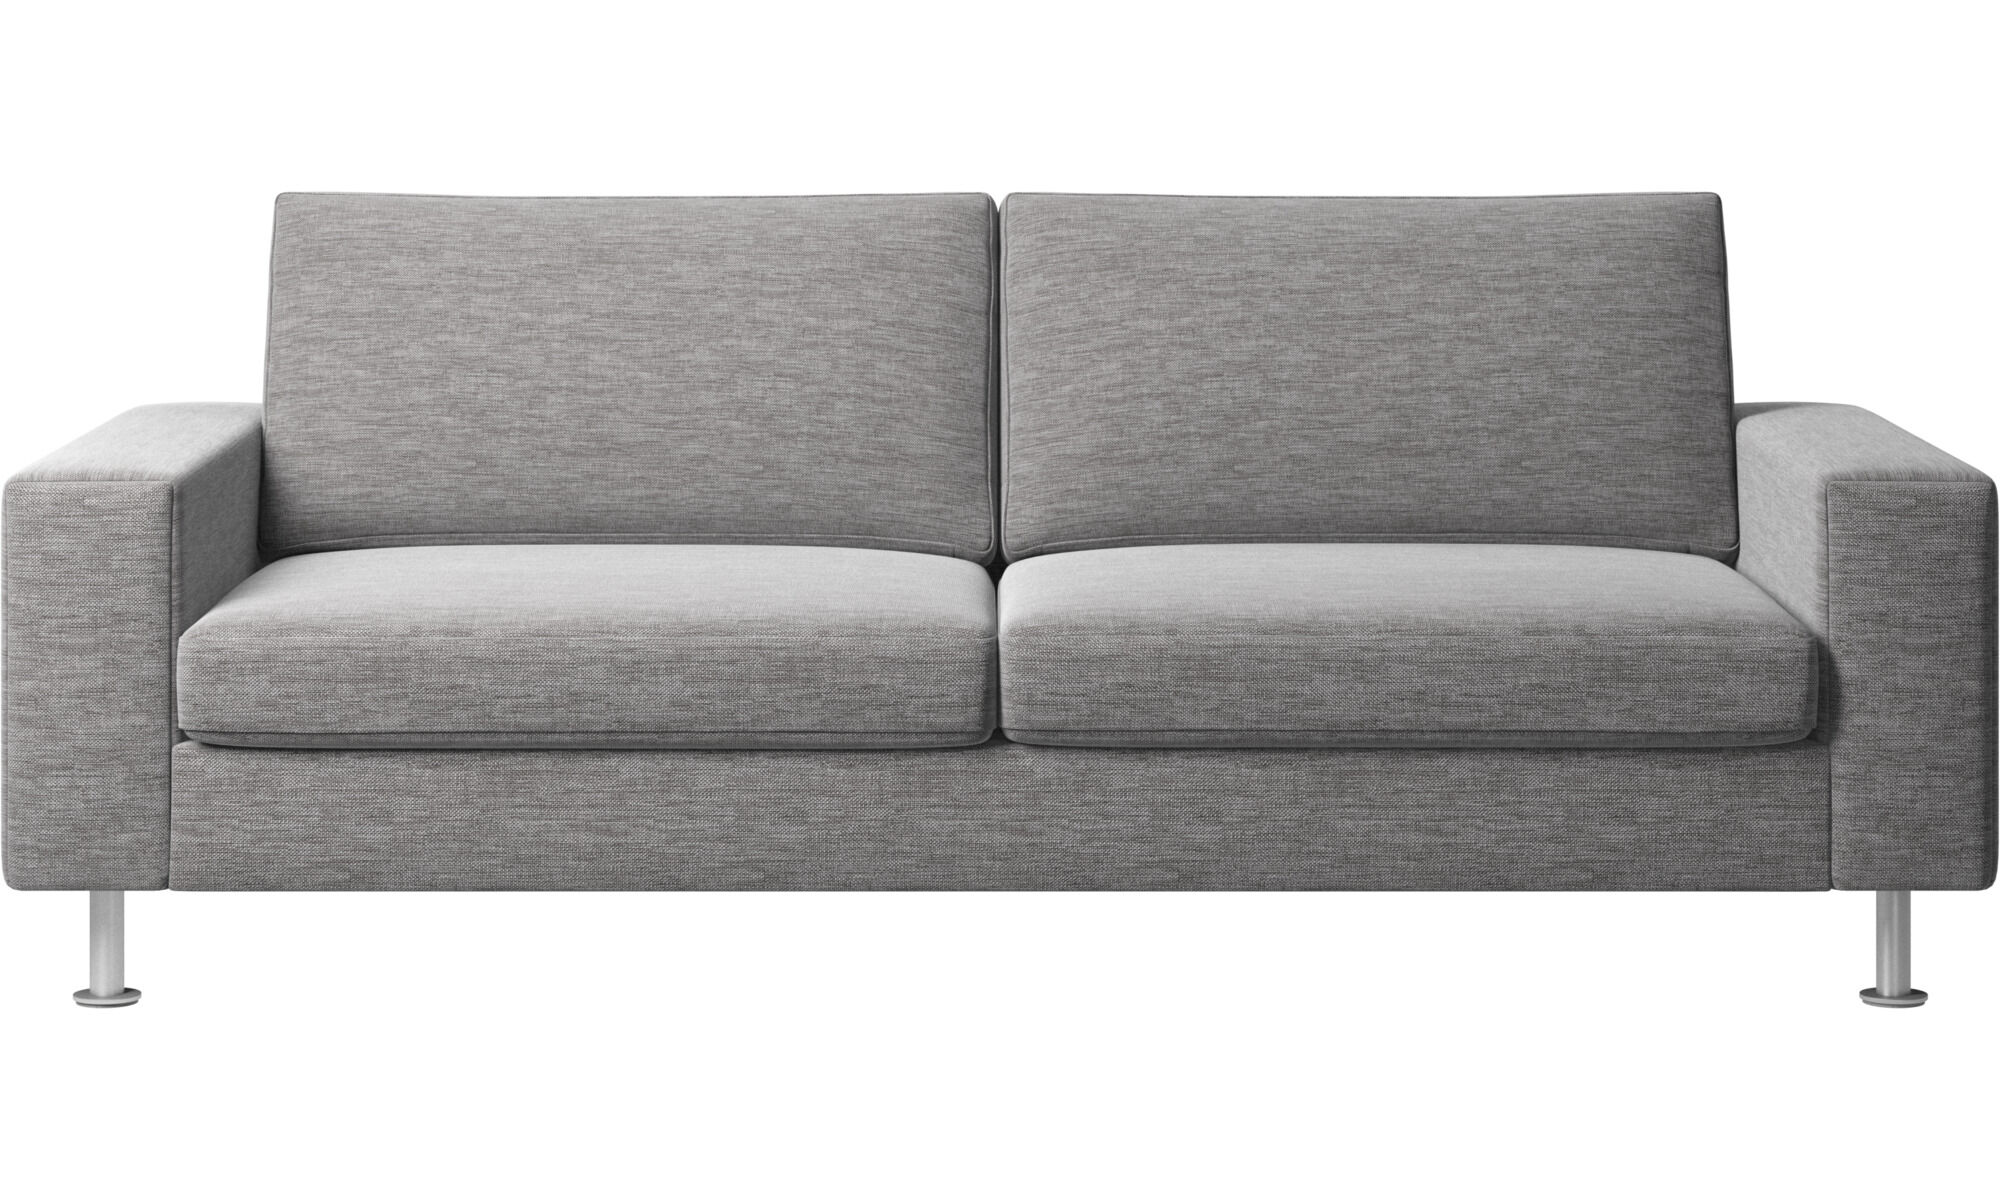 boconcept sleeper sofa review flexsteel leather cleaning beds quality from indivi bed gray fabric